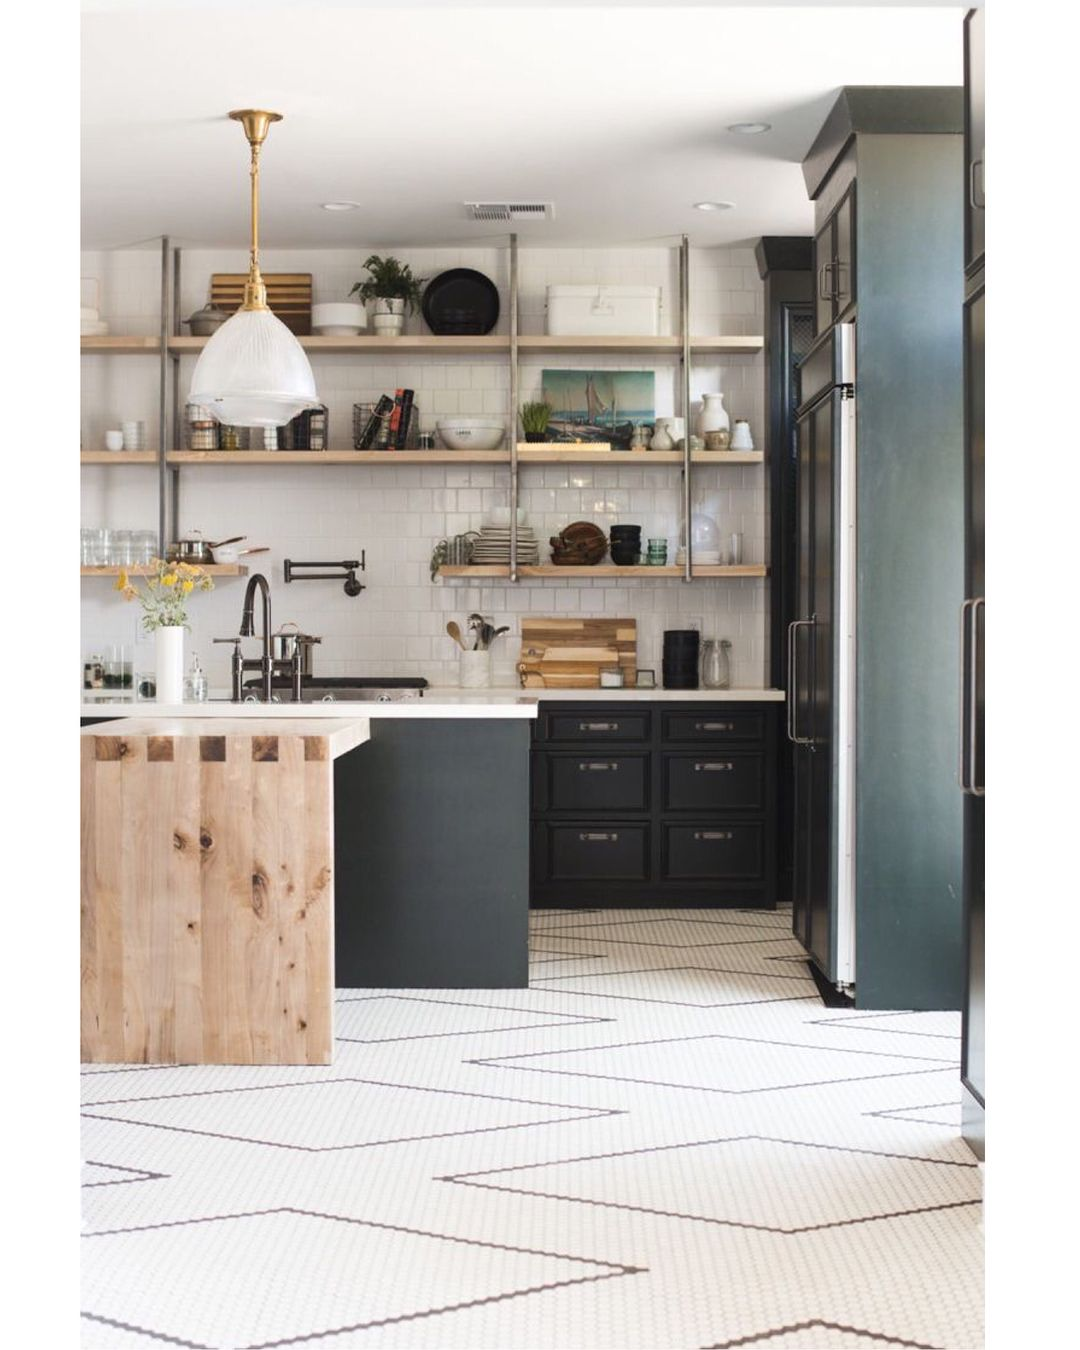 Such An Amazing Kitchen I Love How She Made The Tiles Into A Big Scale Diamond Pattern So Cleve Kitchen Floor Tile Green Kitchen Cabinets White Kitchen Floor